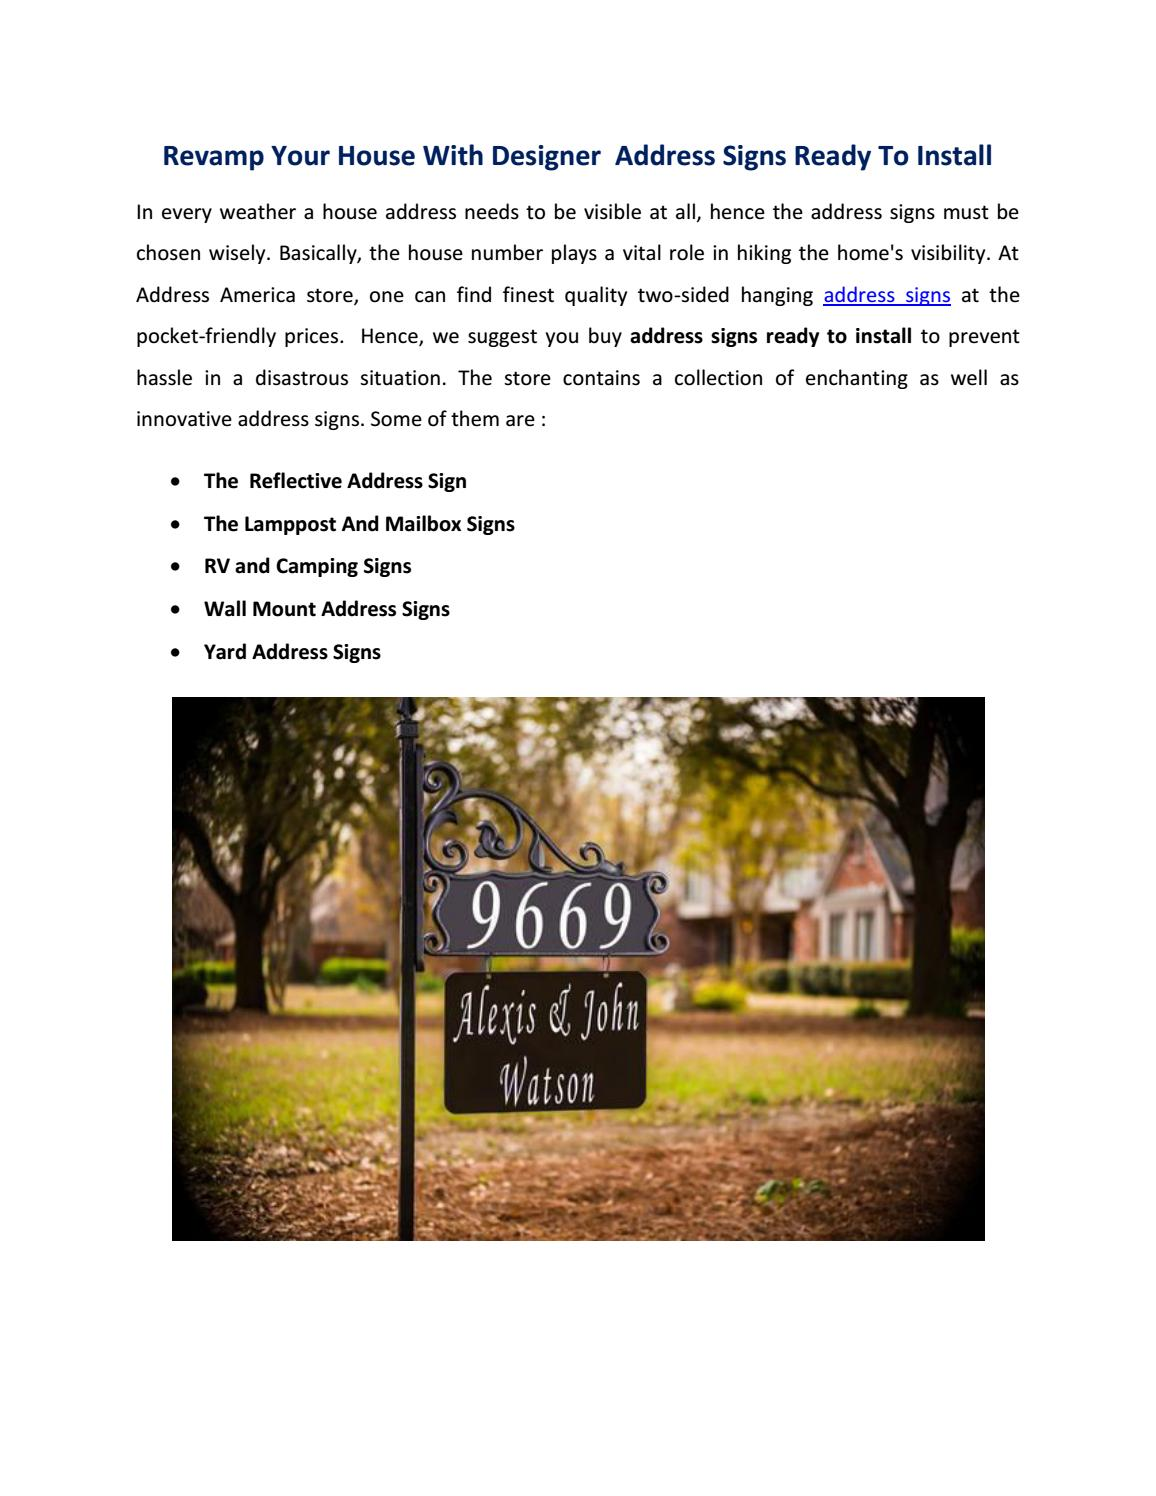 Revamp your house with designer address signs ready to install by address america issuu